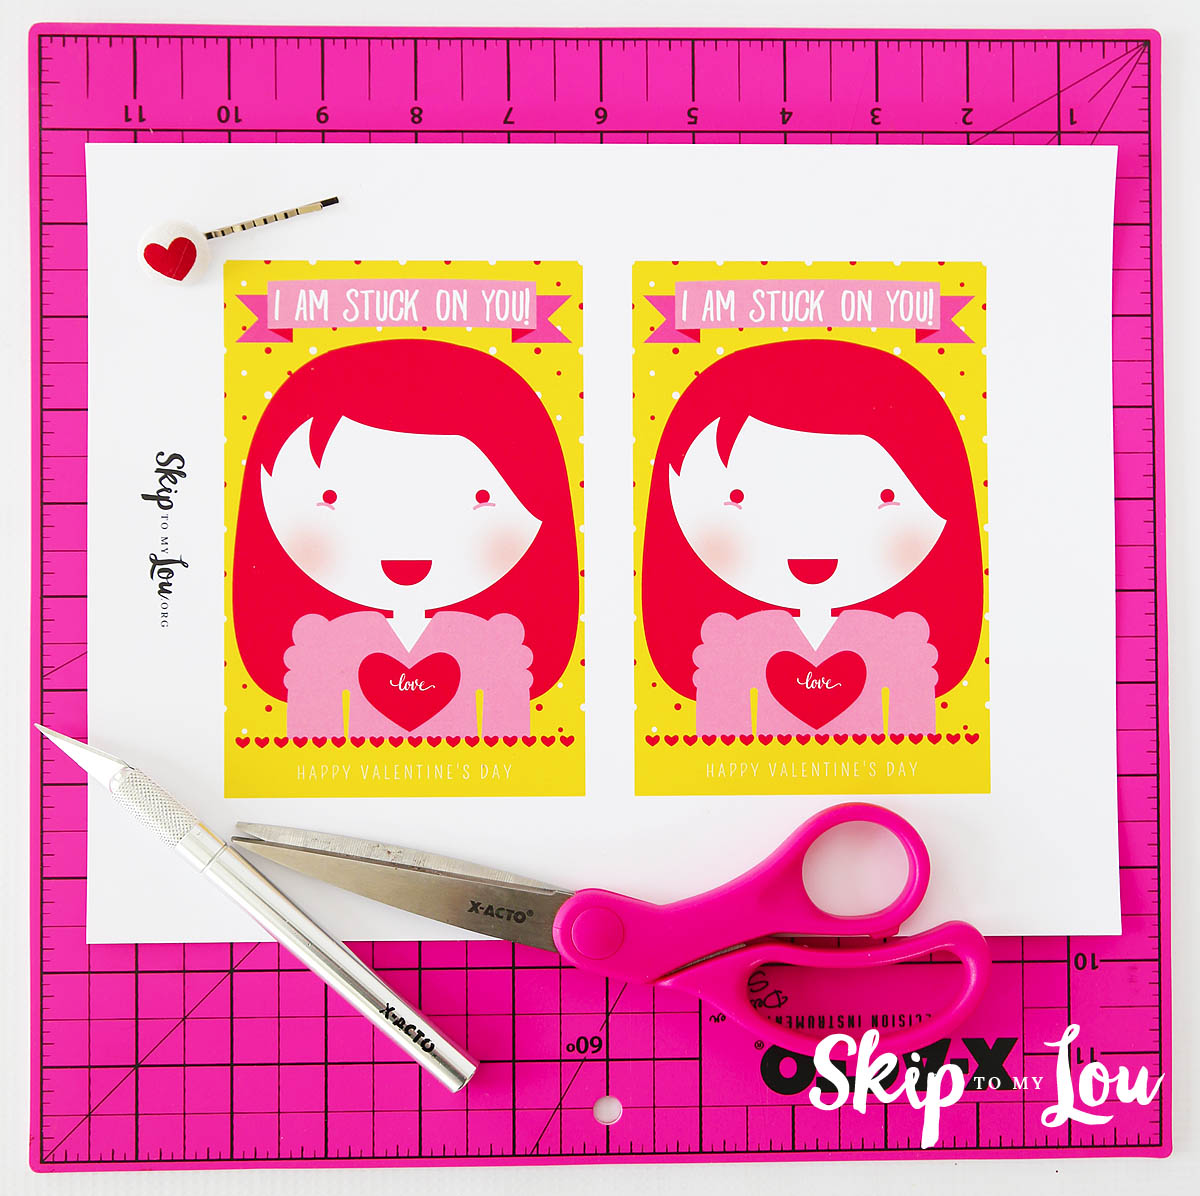 Stuck on you Valentine supplies